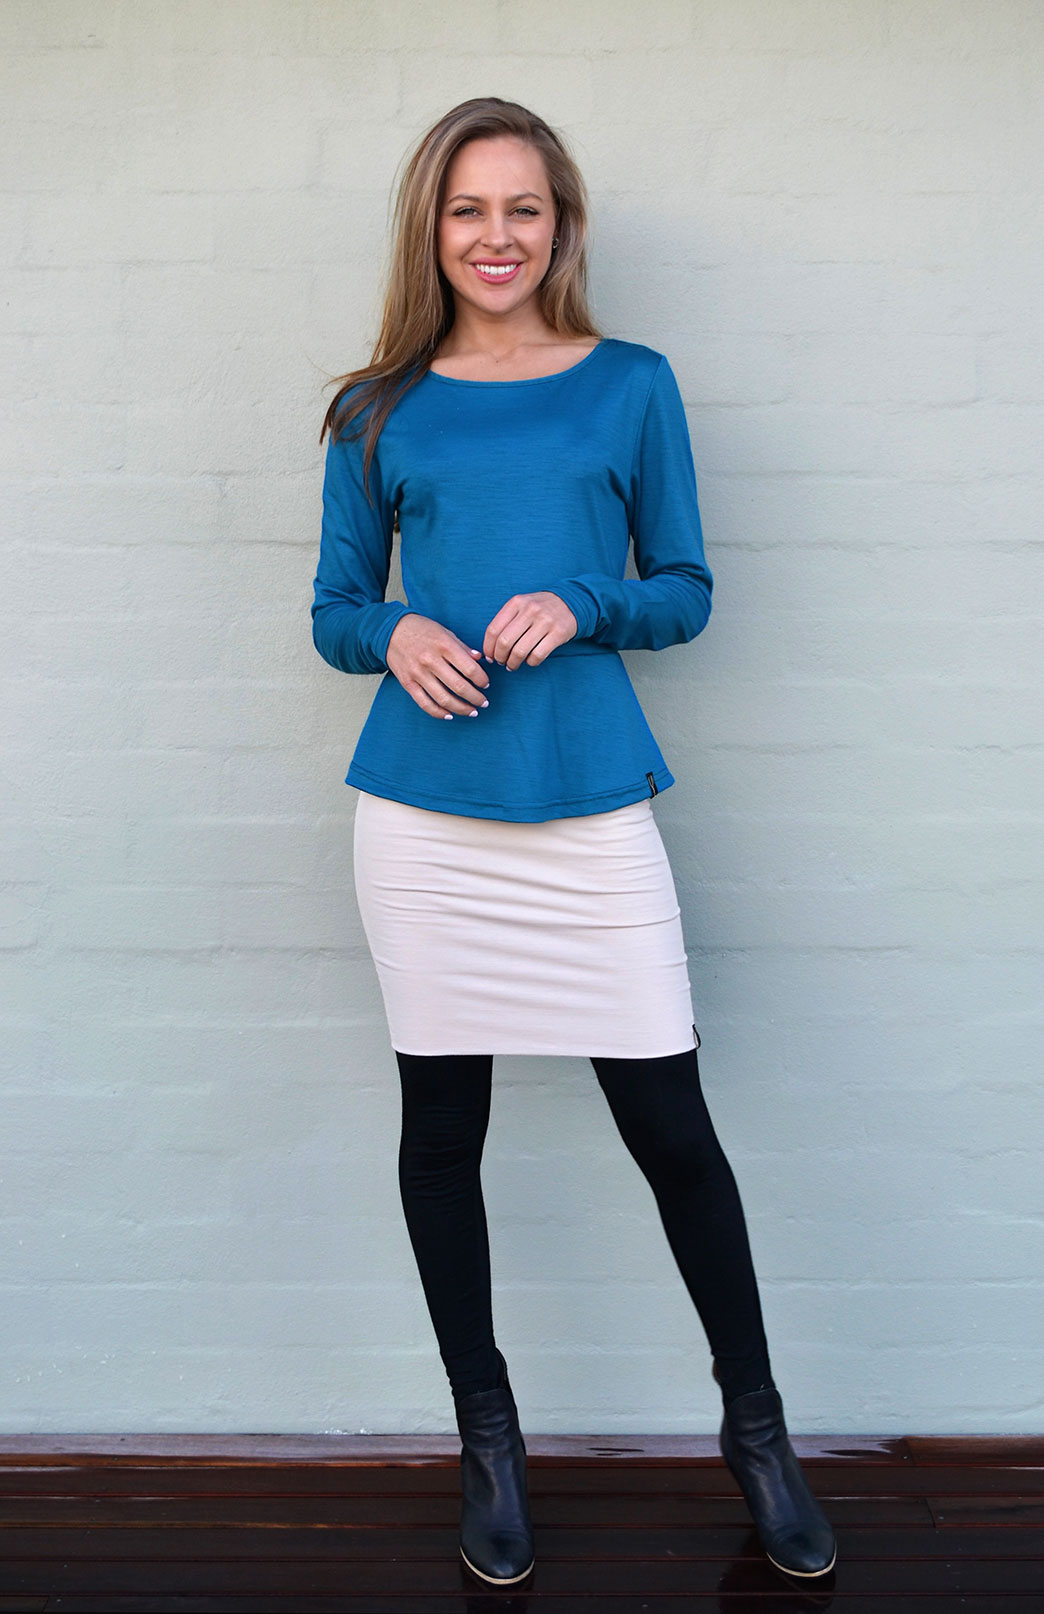 Peplum Top - Long Sleeved - Women's Dragonfly Teal Long Sleeve Wool Winter Top - Smitten Merino Tasmania Australia